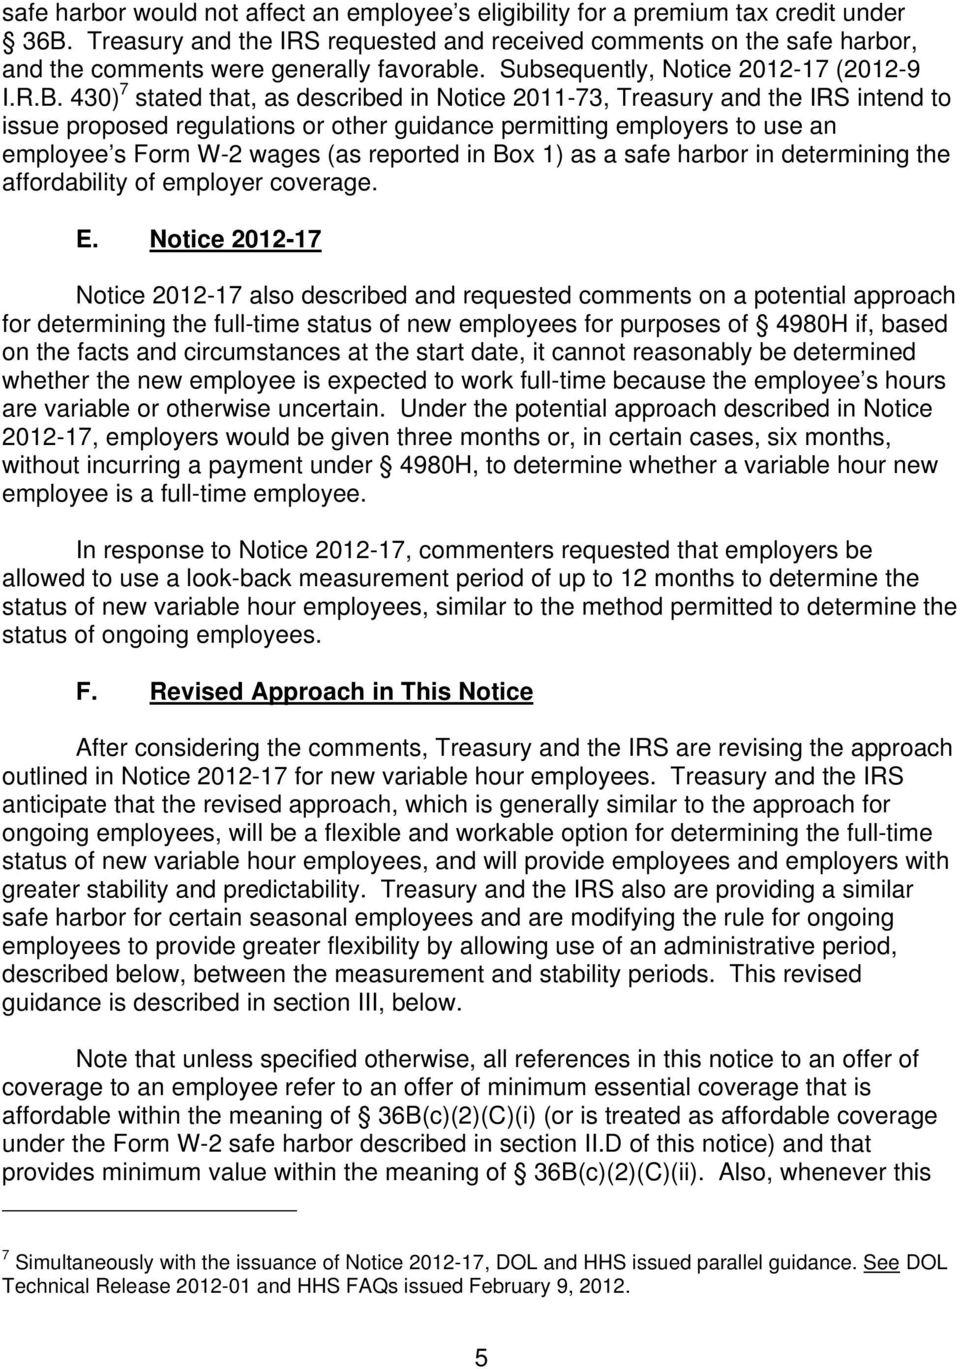 430) 7 stated that, as described in Notice 2011-73, Treasury and the IRS intend to issue proposed regulations or other guidance permitting employers to use an employee s Form W-2 wages (as reported